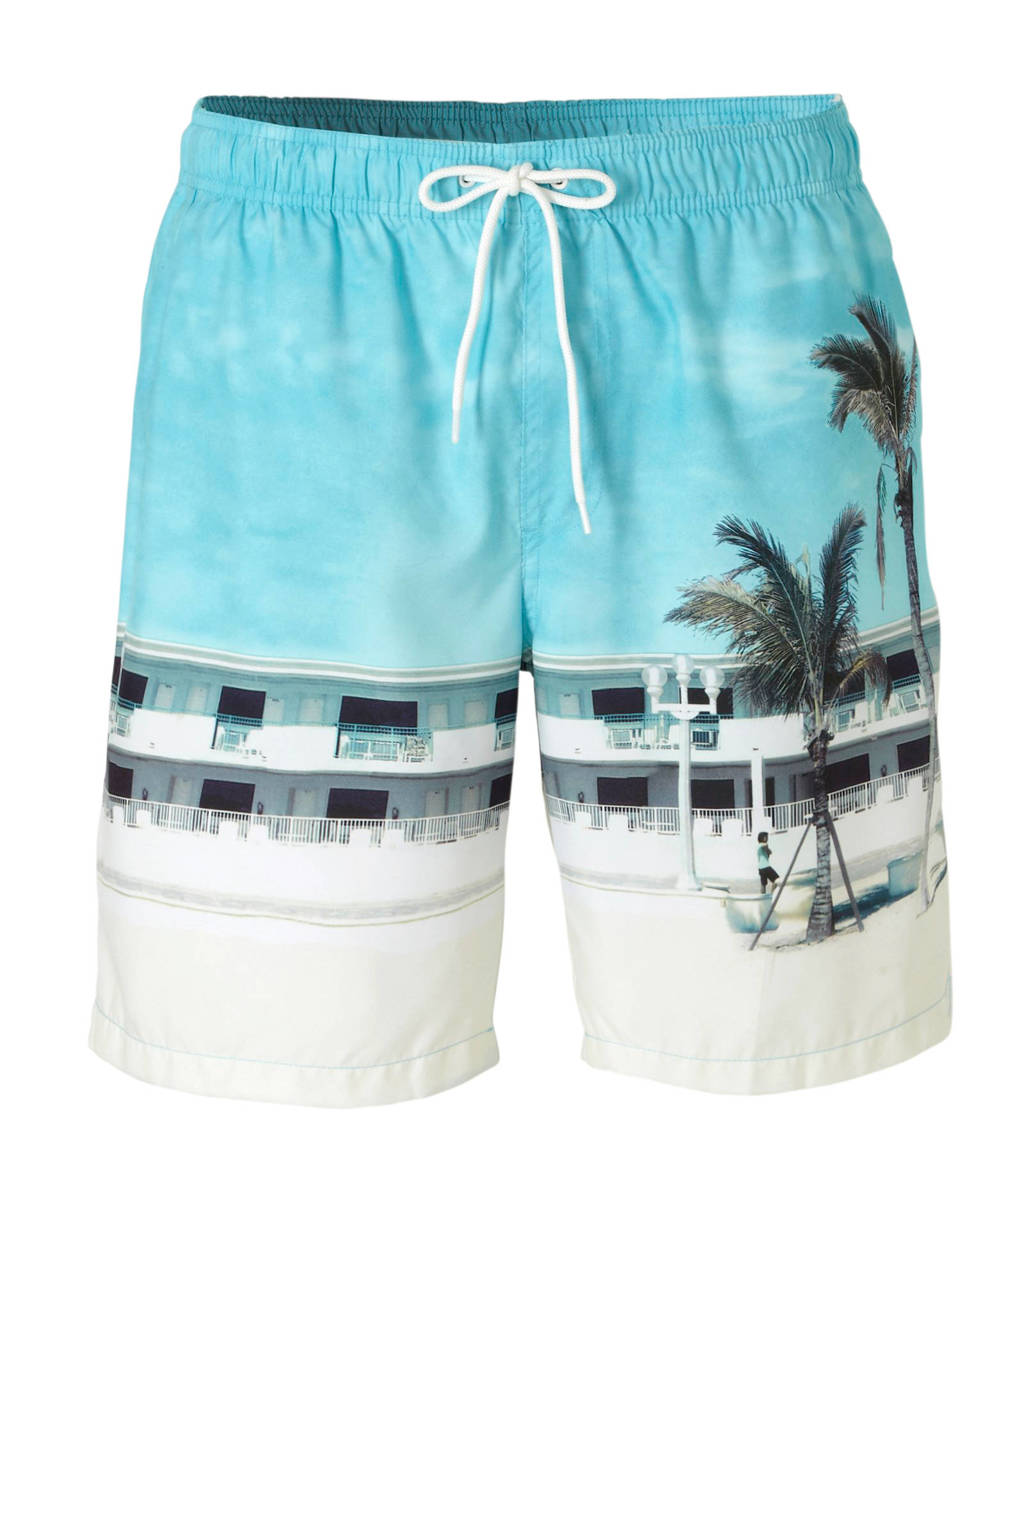 C&A zwemshort met fotoprint turquoise, Turquoise/wit